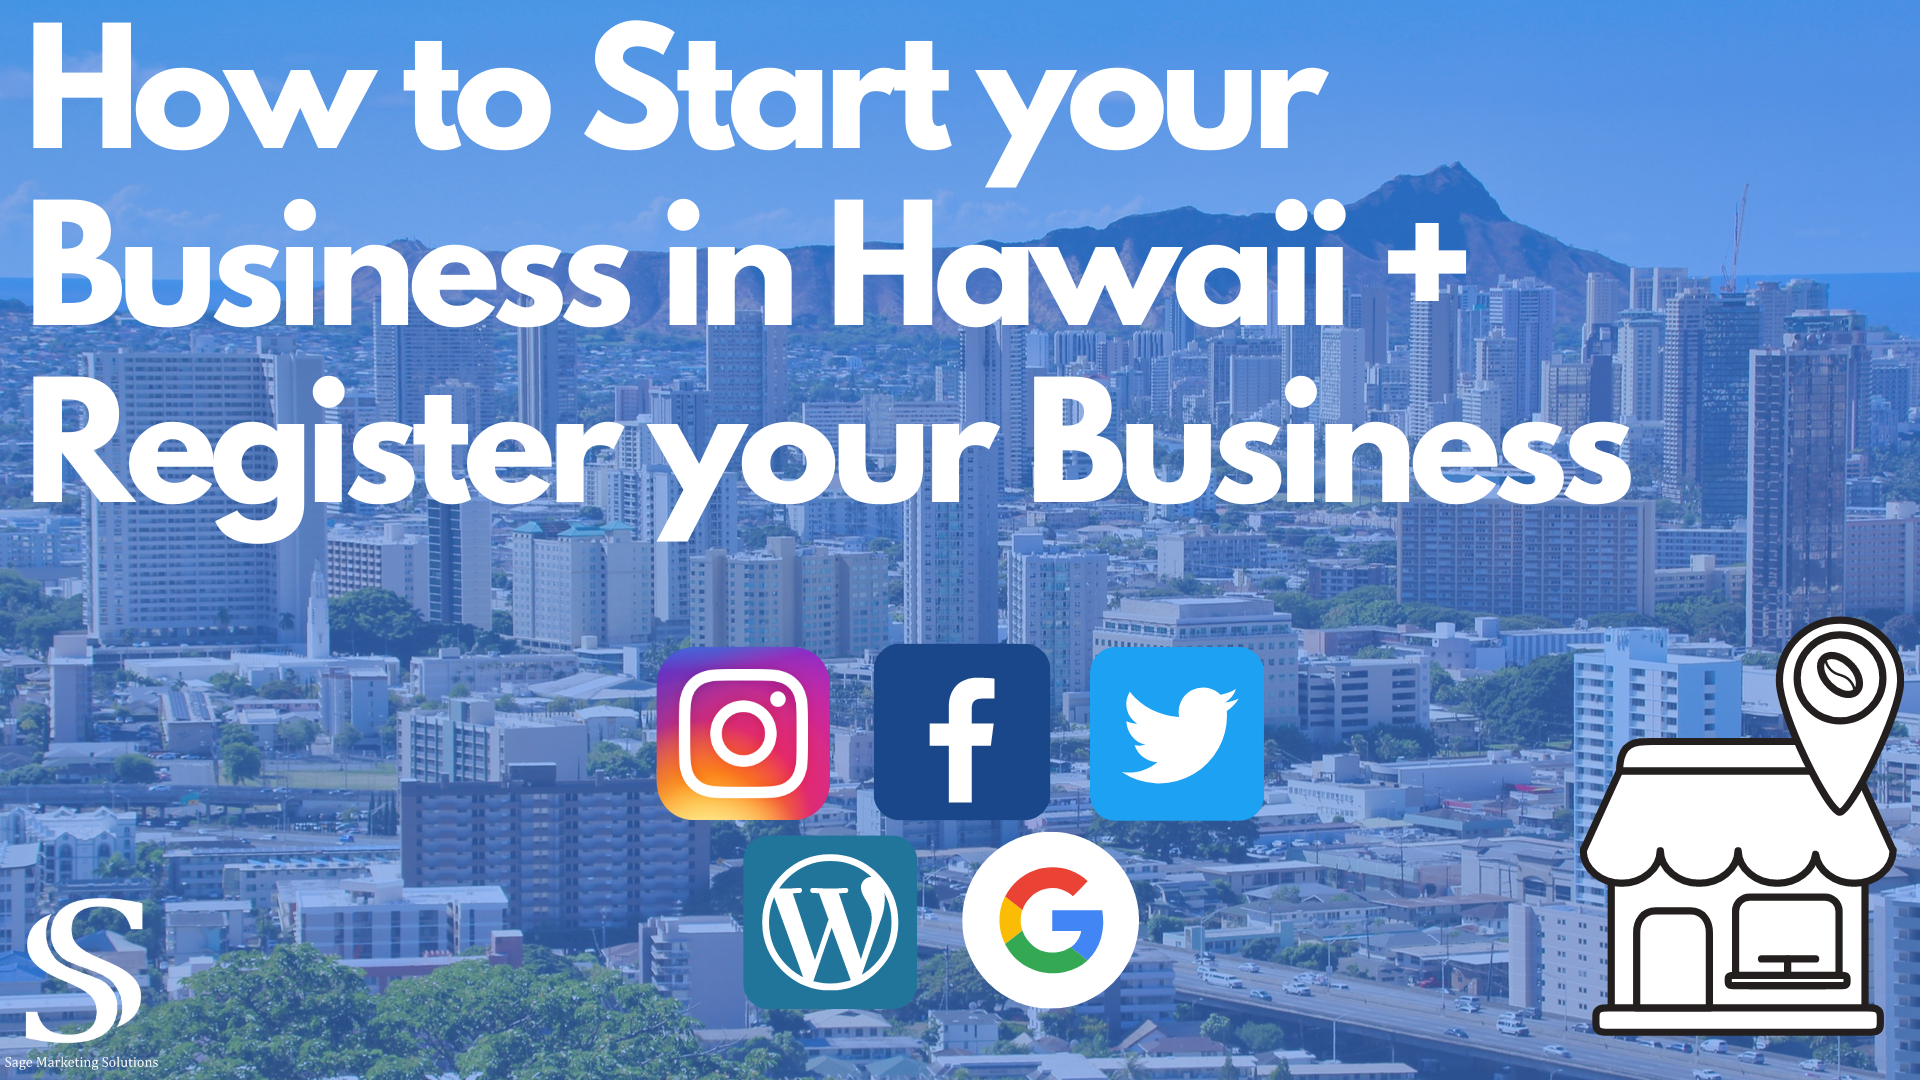 How to Start a Business in Hawaii and Register your Business with the State of Hawaii